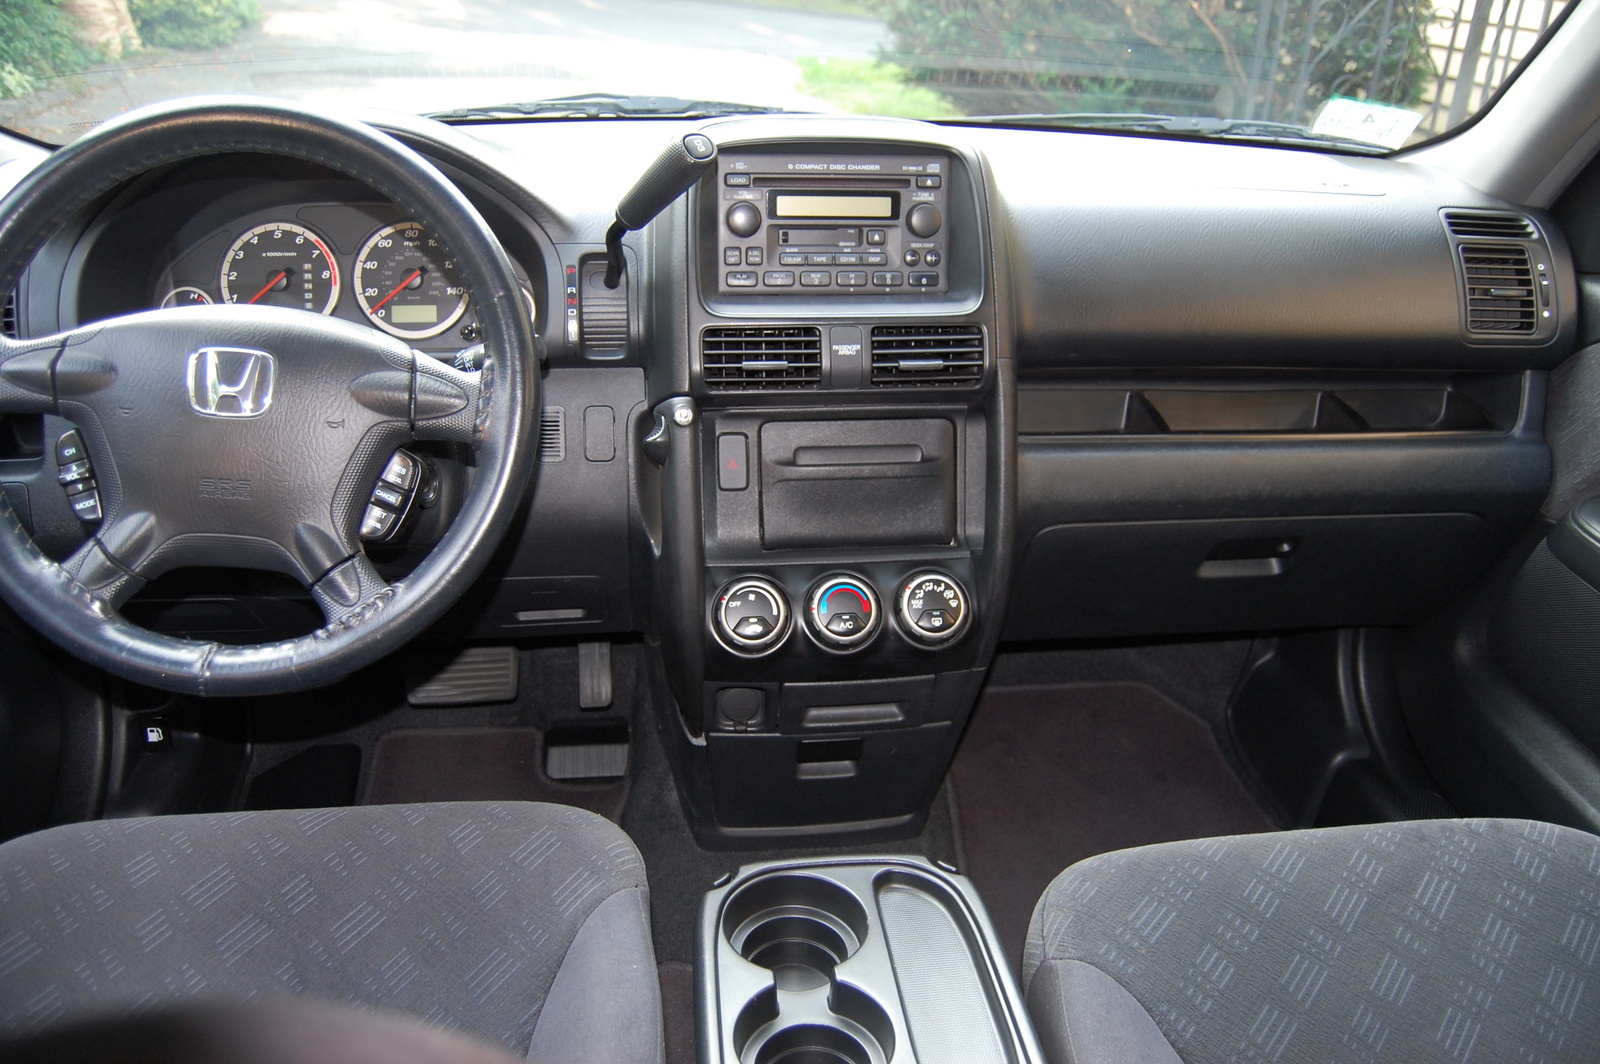 2006 honda cr v interior pictures cargurus